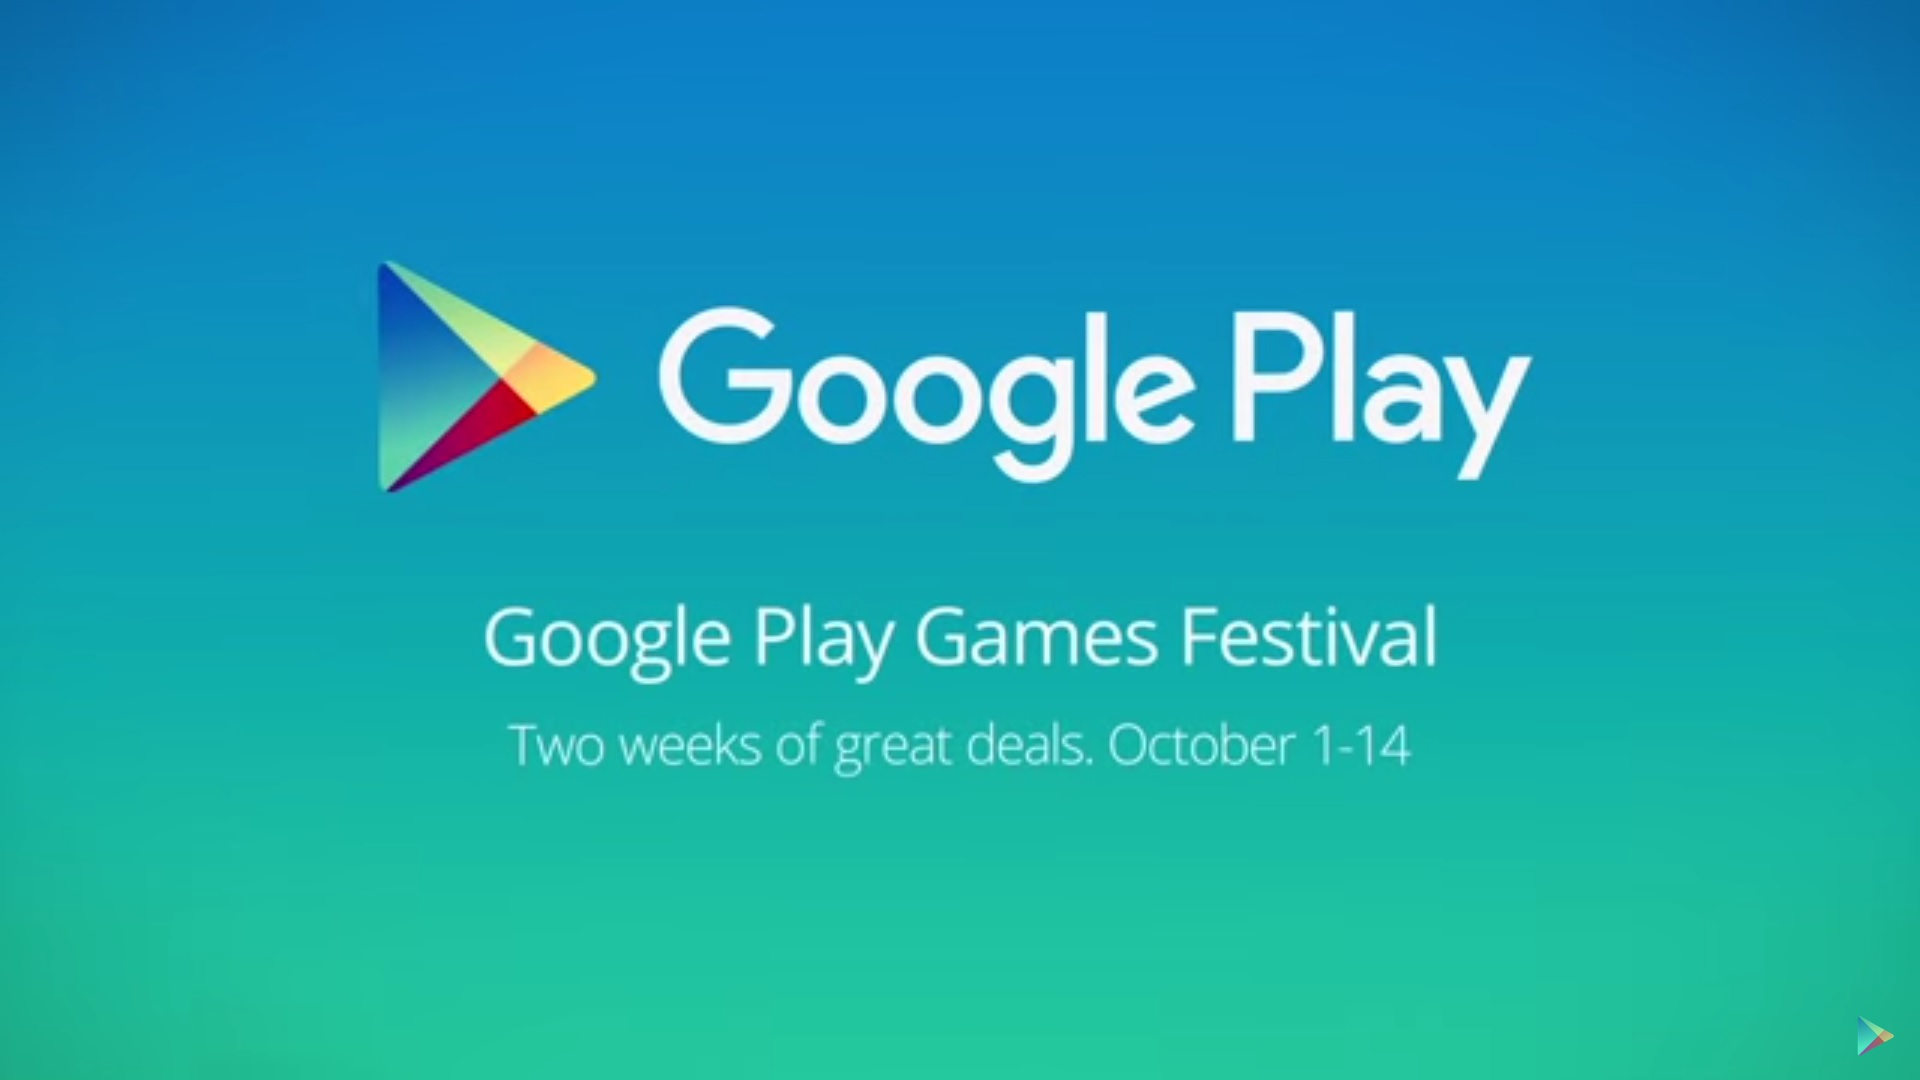 A bunch of games and IAPs are on sale right now in the Google Play Games Festival